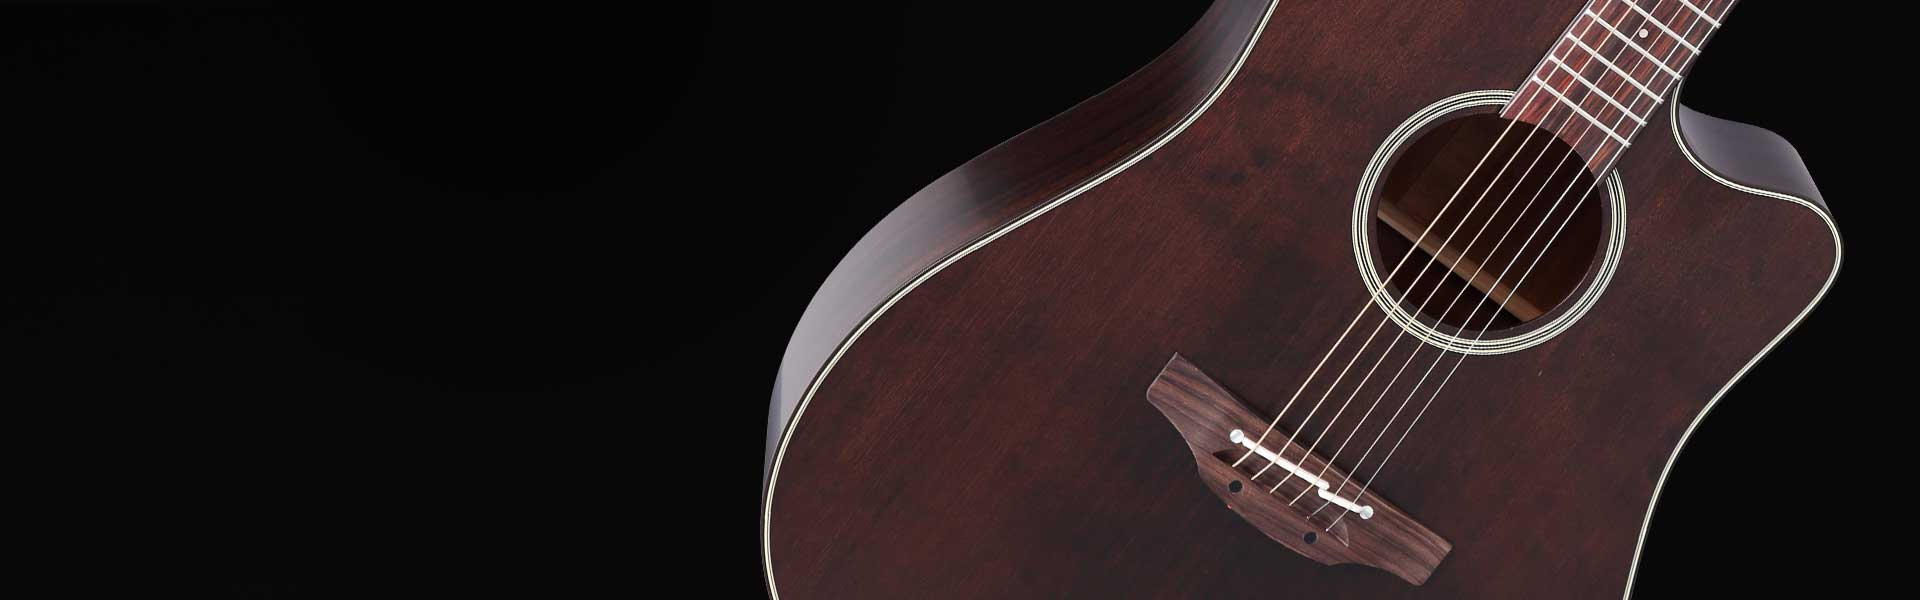 Takamine P1 Dreadnought mit Satin Molasse Finish